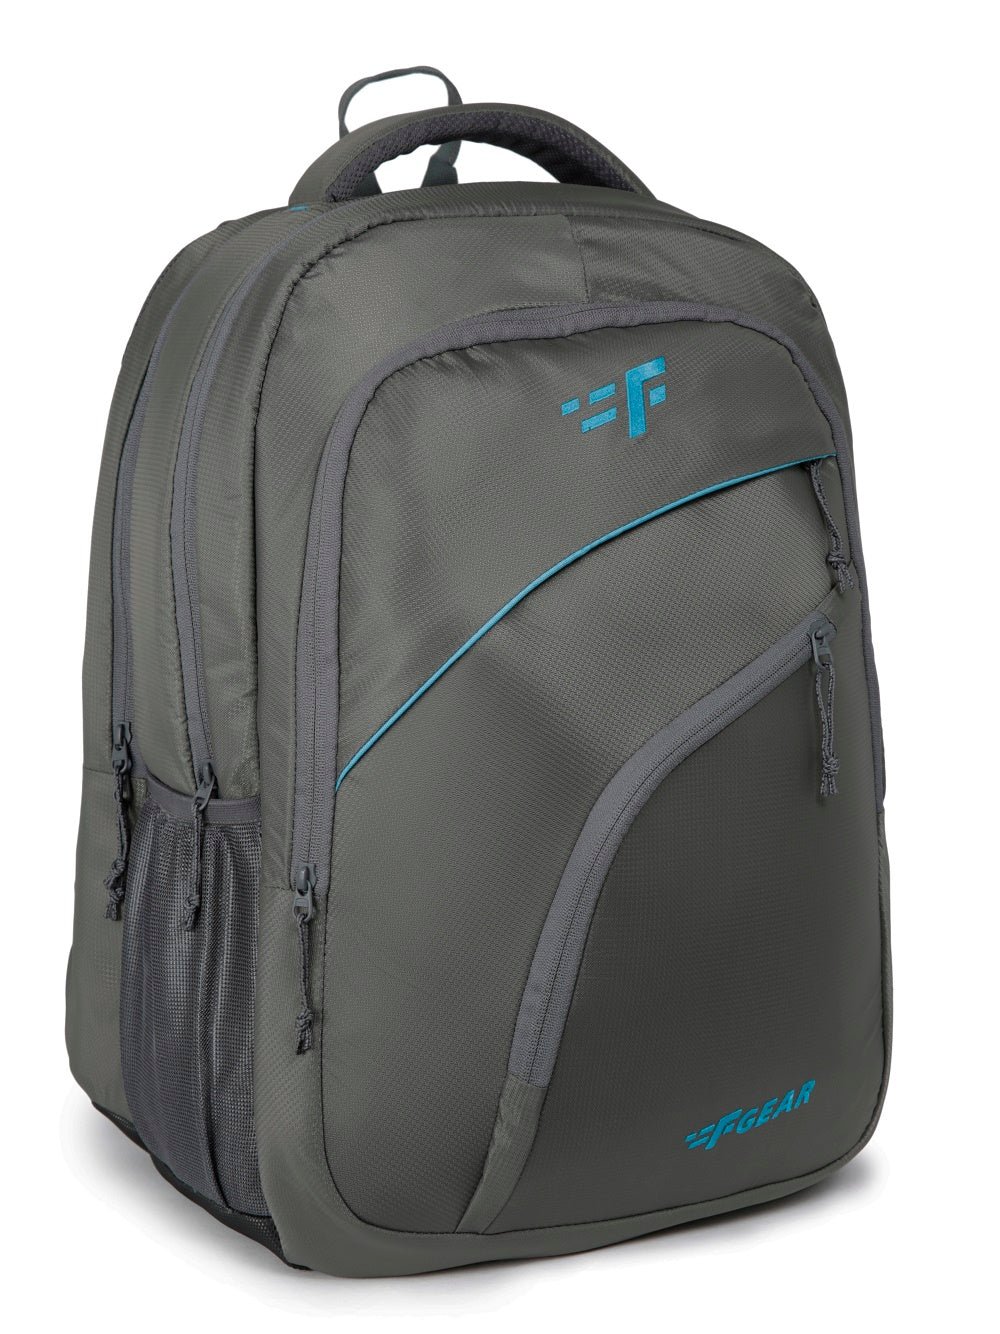 F Gear Millionaire Doby 36 Ltrs Grey Laptop Backpack with Rain Cover (3202)